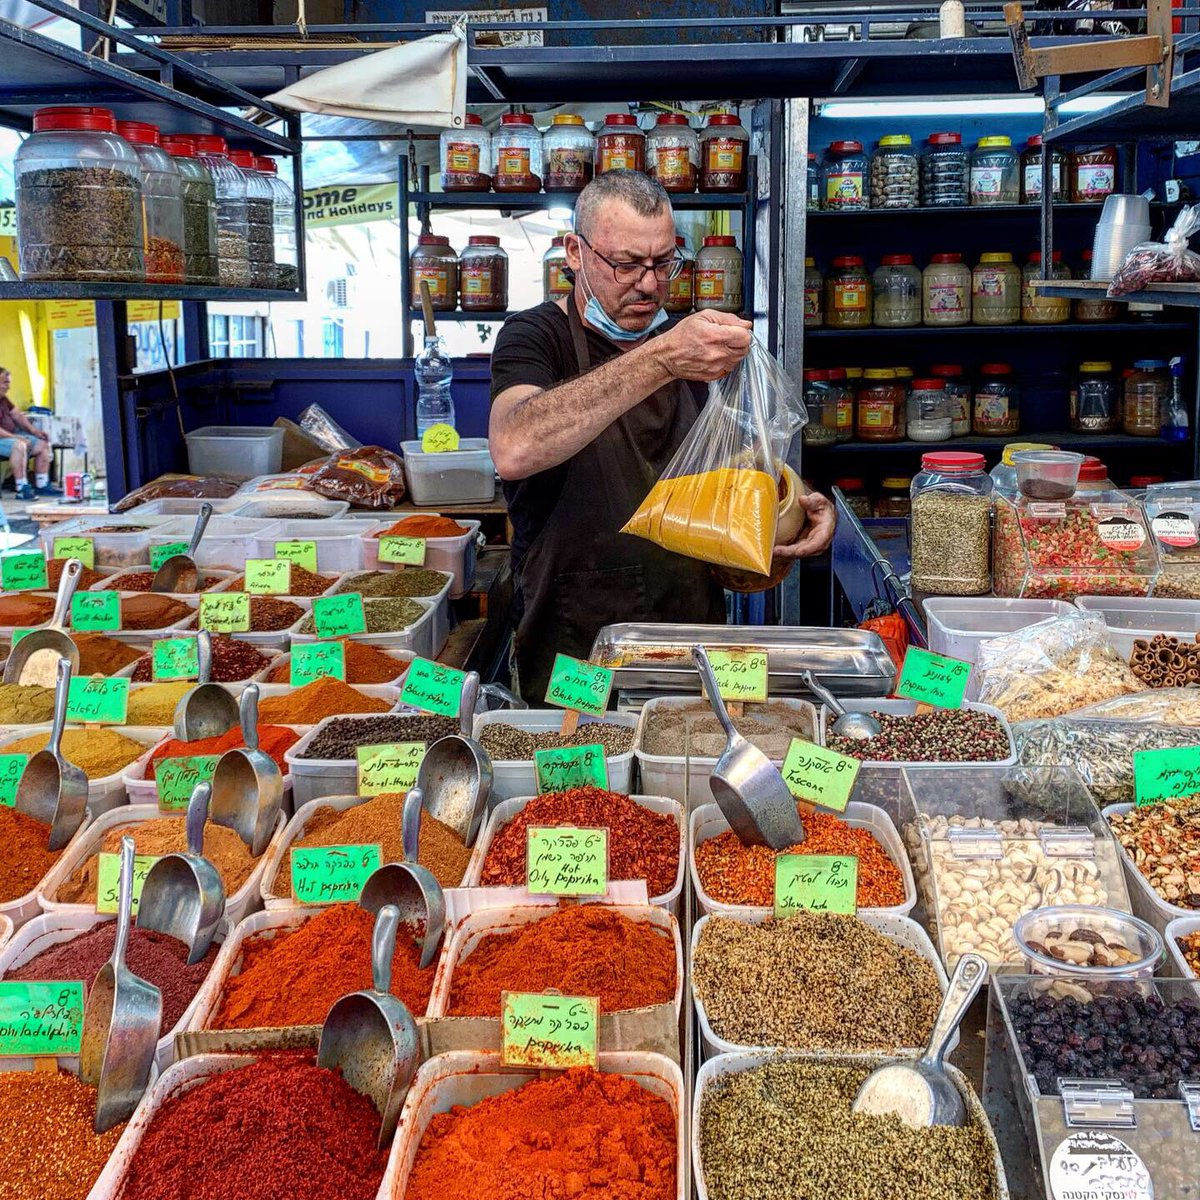 Scents and colors:  A spices shop in Carmel Market #TelAviv #Israelpic.twitter.com/IHh4w62hIL